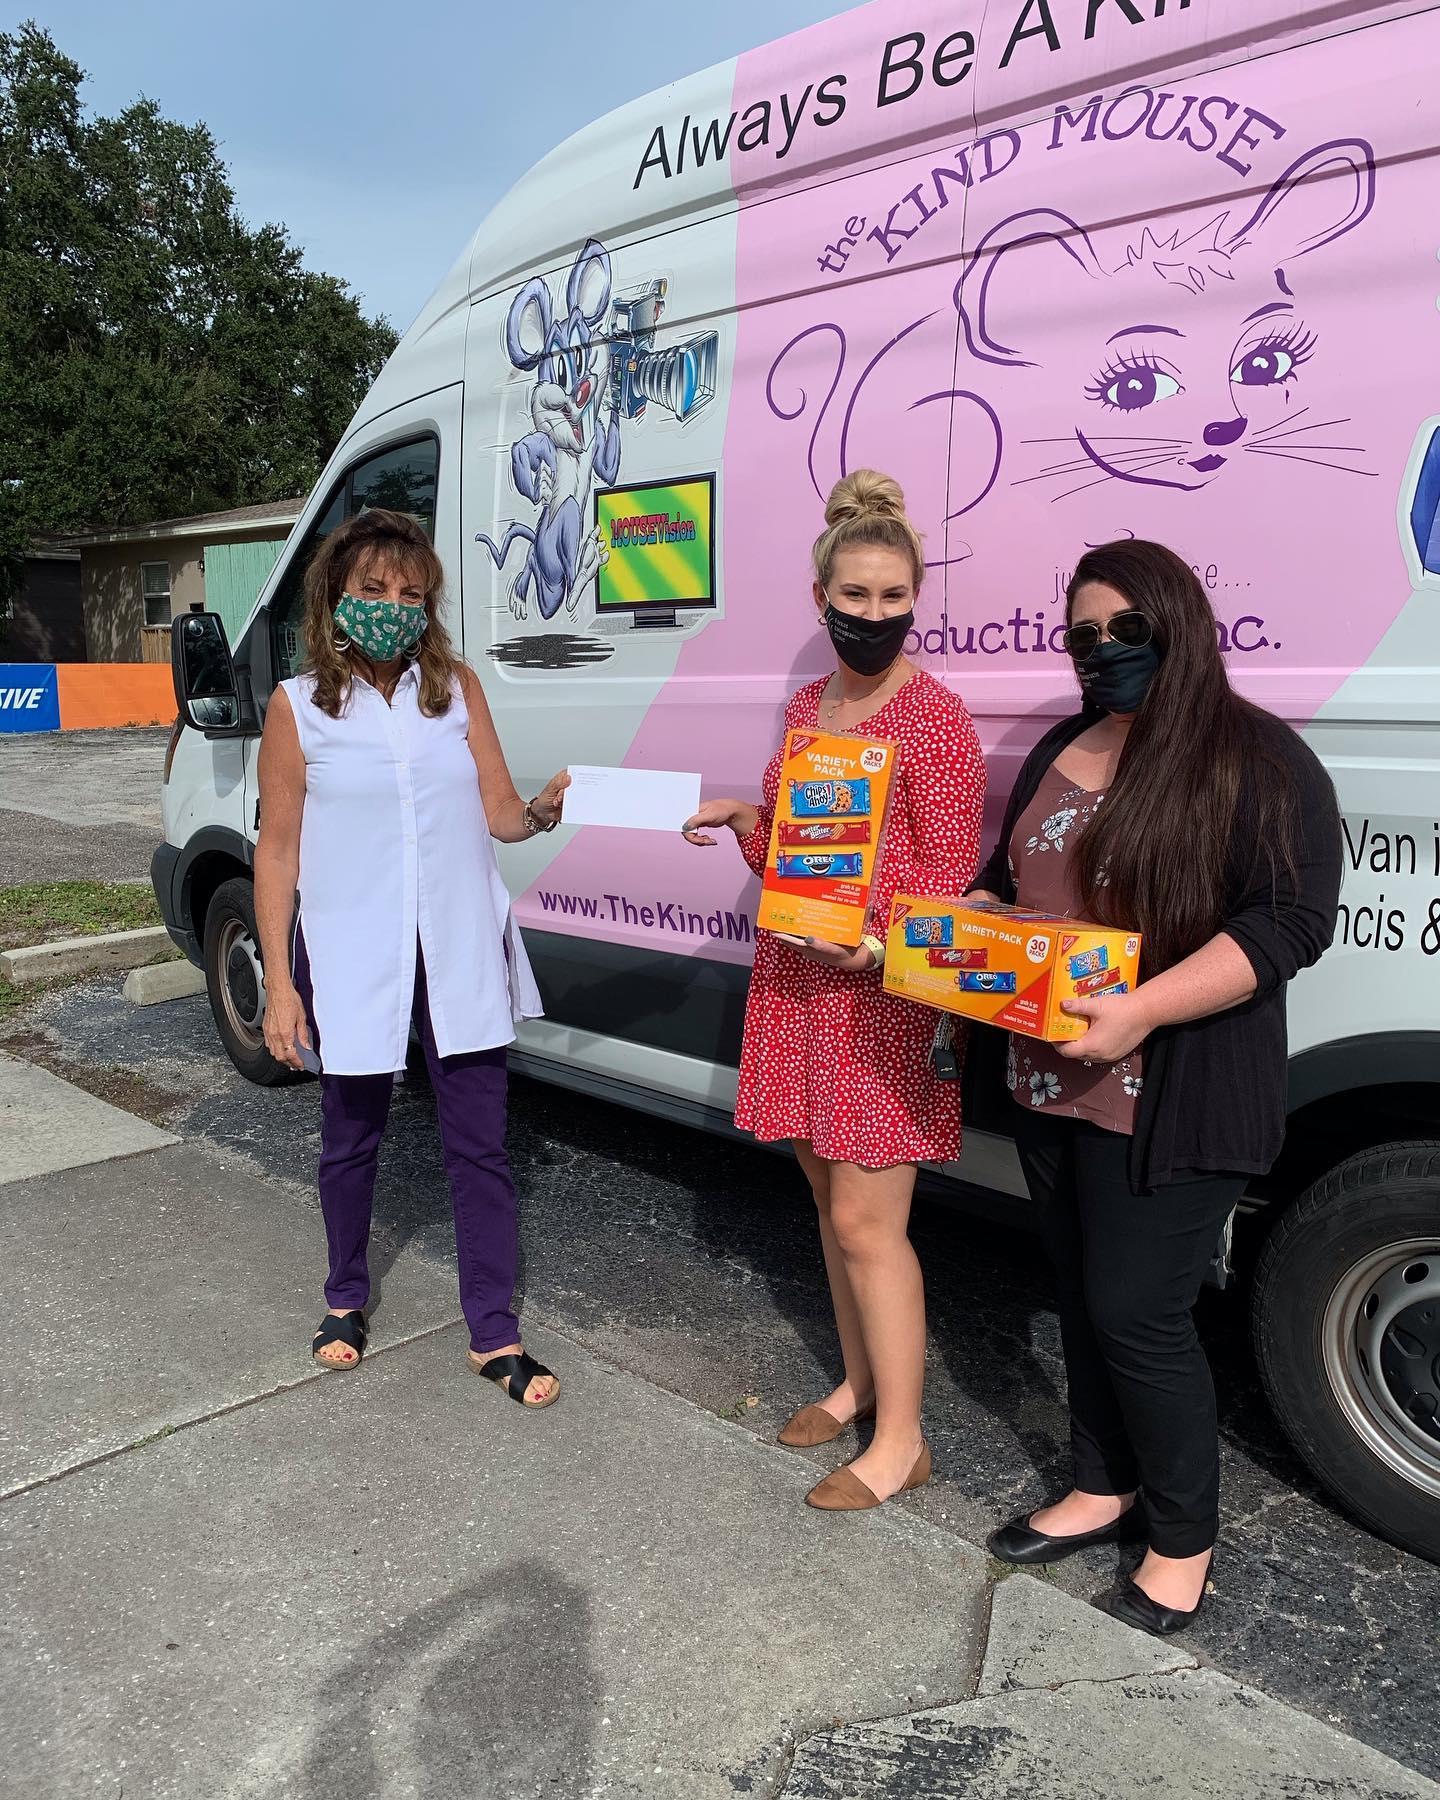 Three women in face masks stand in front of a pink and white van.